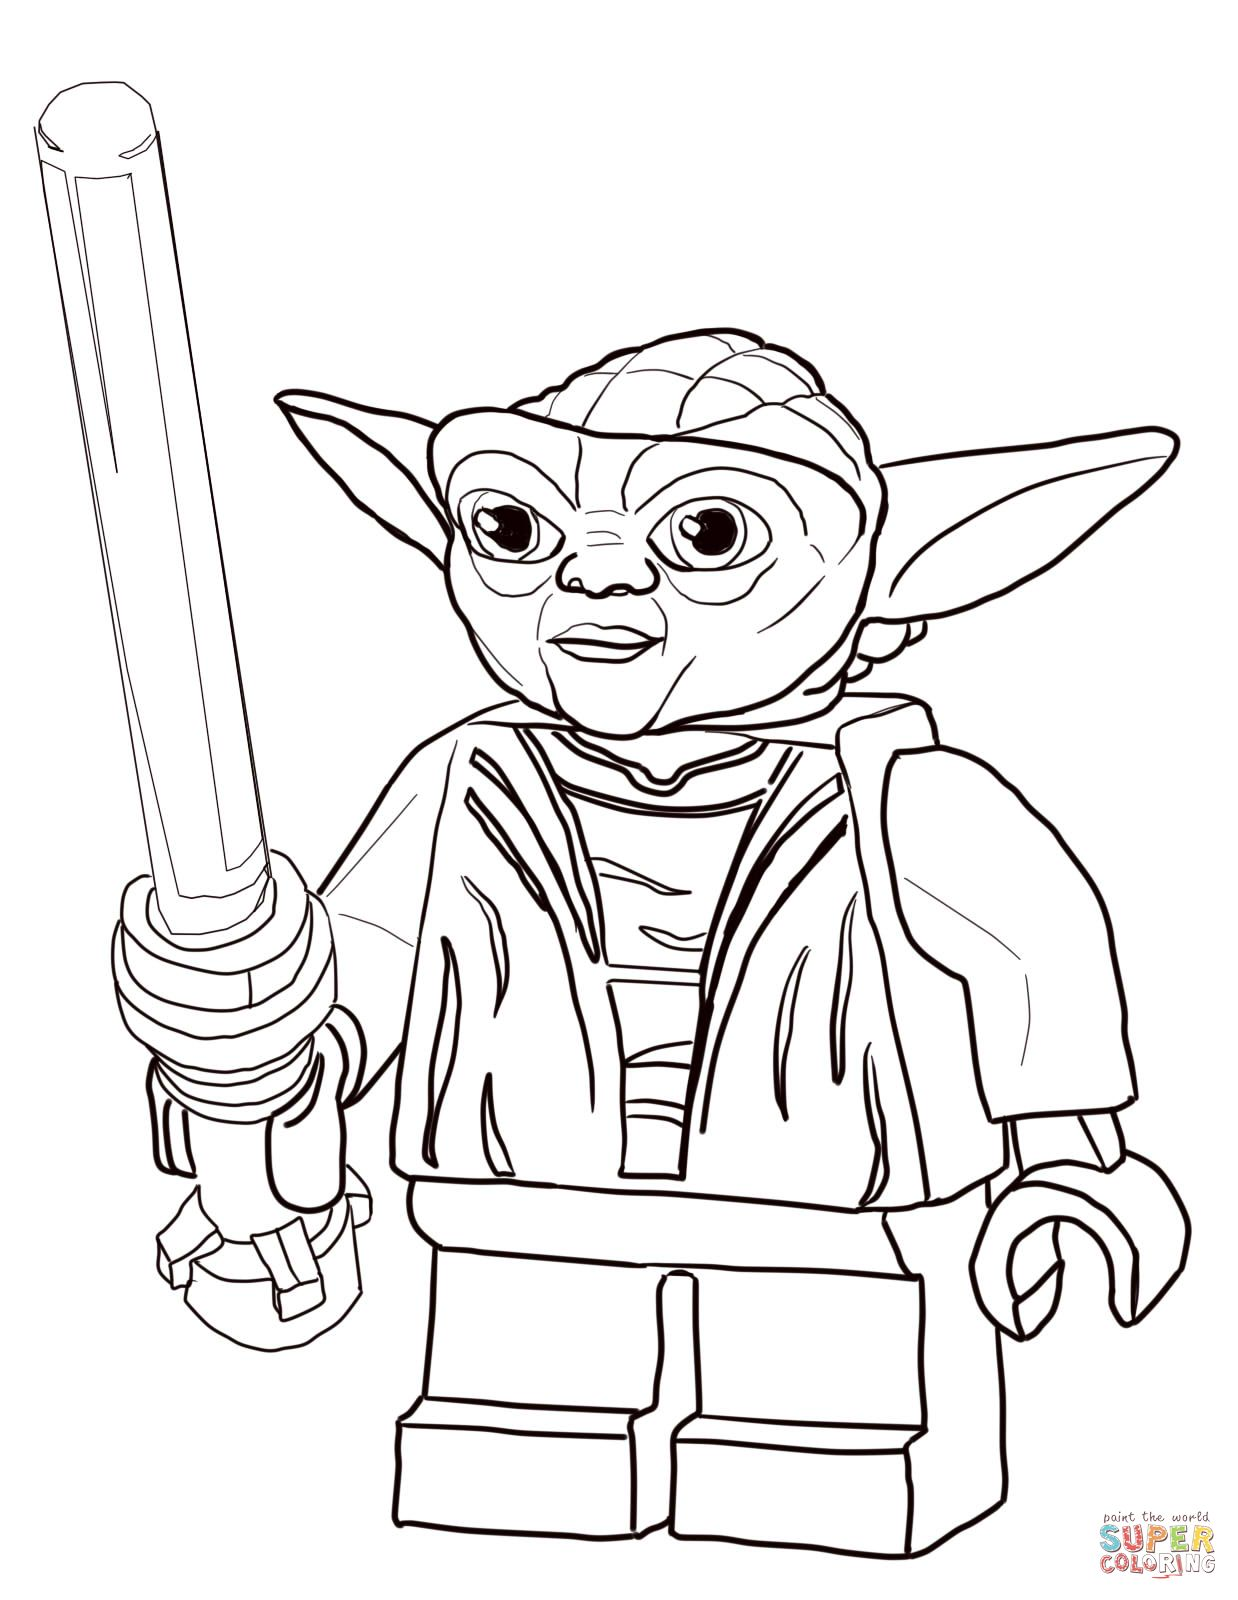 Trends For Lego Star Wars Yoda Coloring Pages Star Wars Coloring Sheet Lego Coloring Pages Star Wars Coloring Book